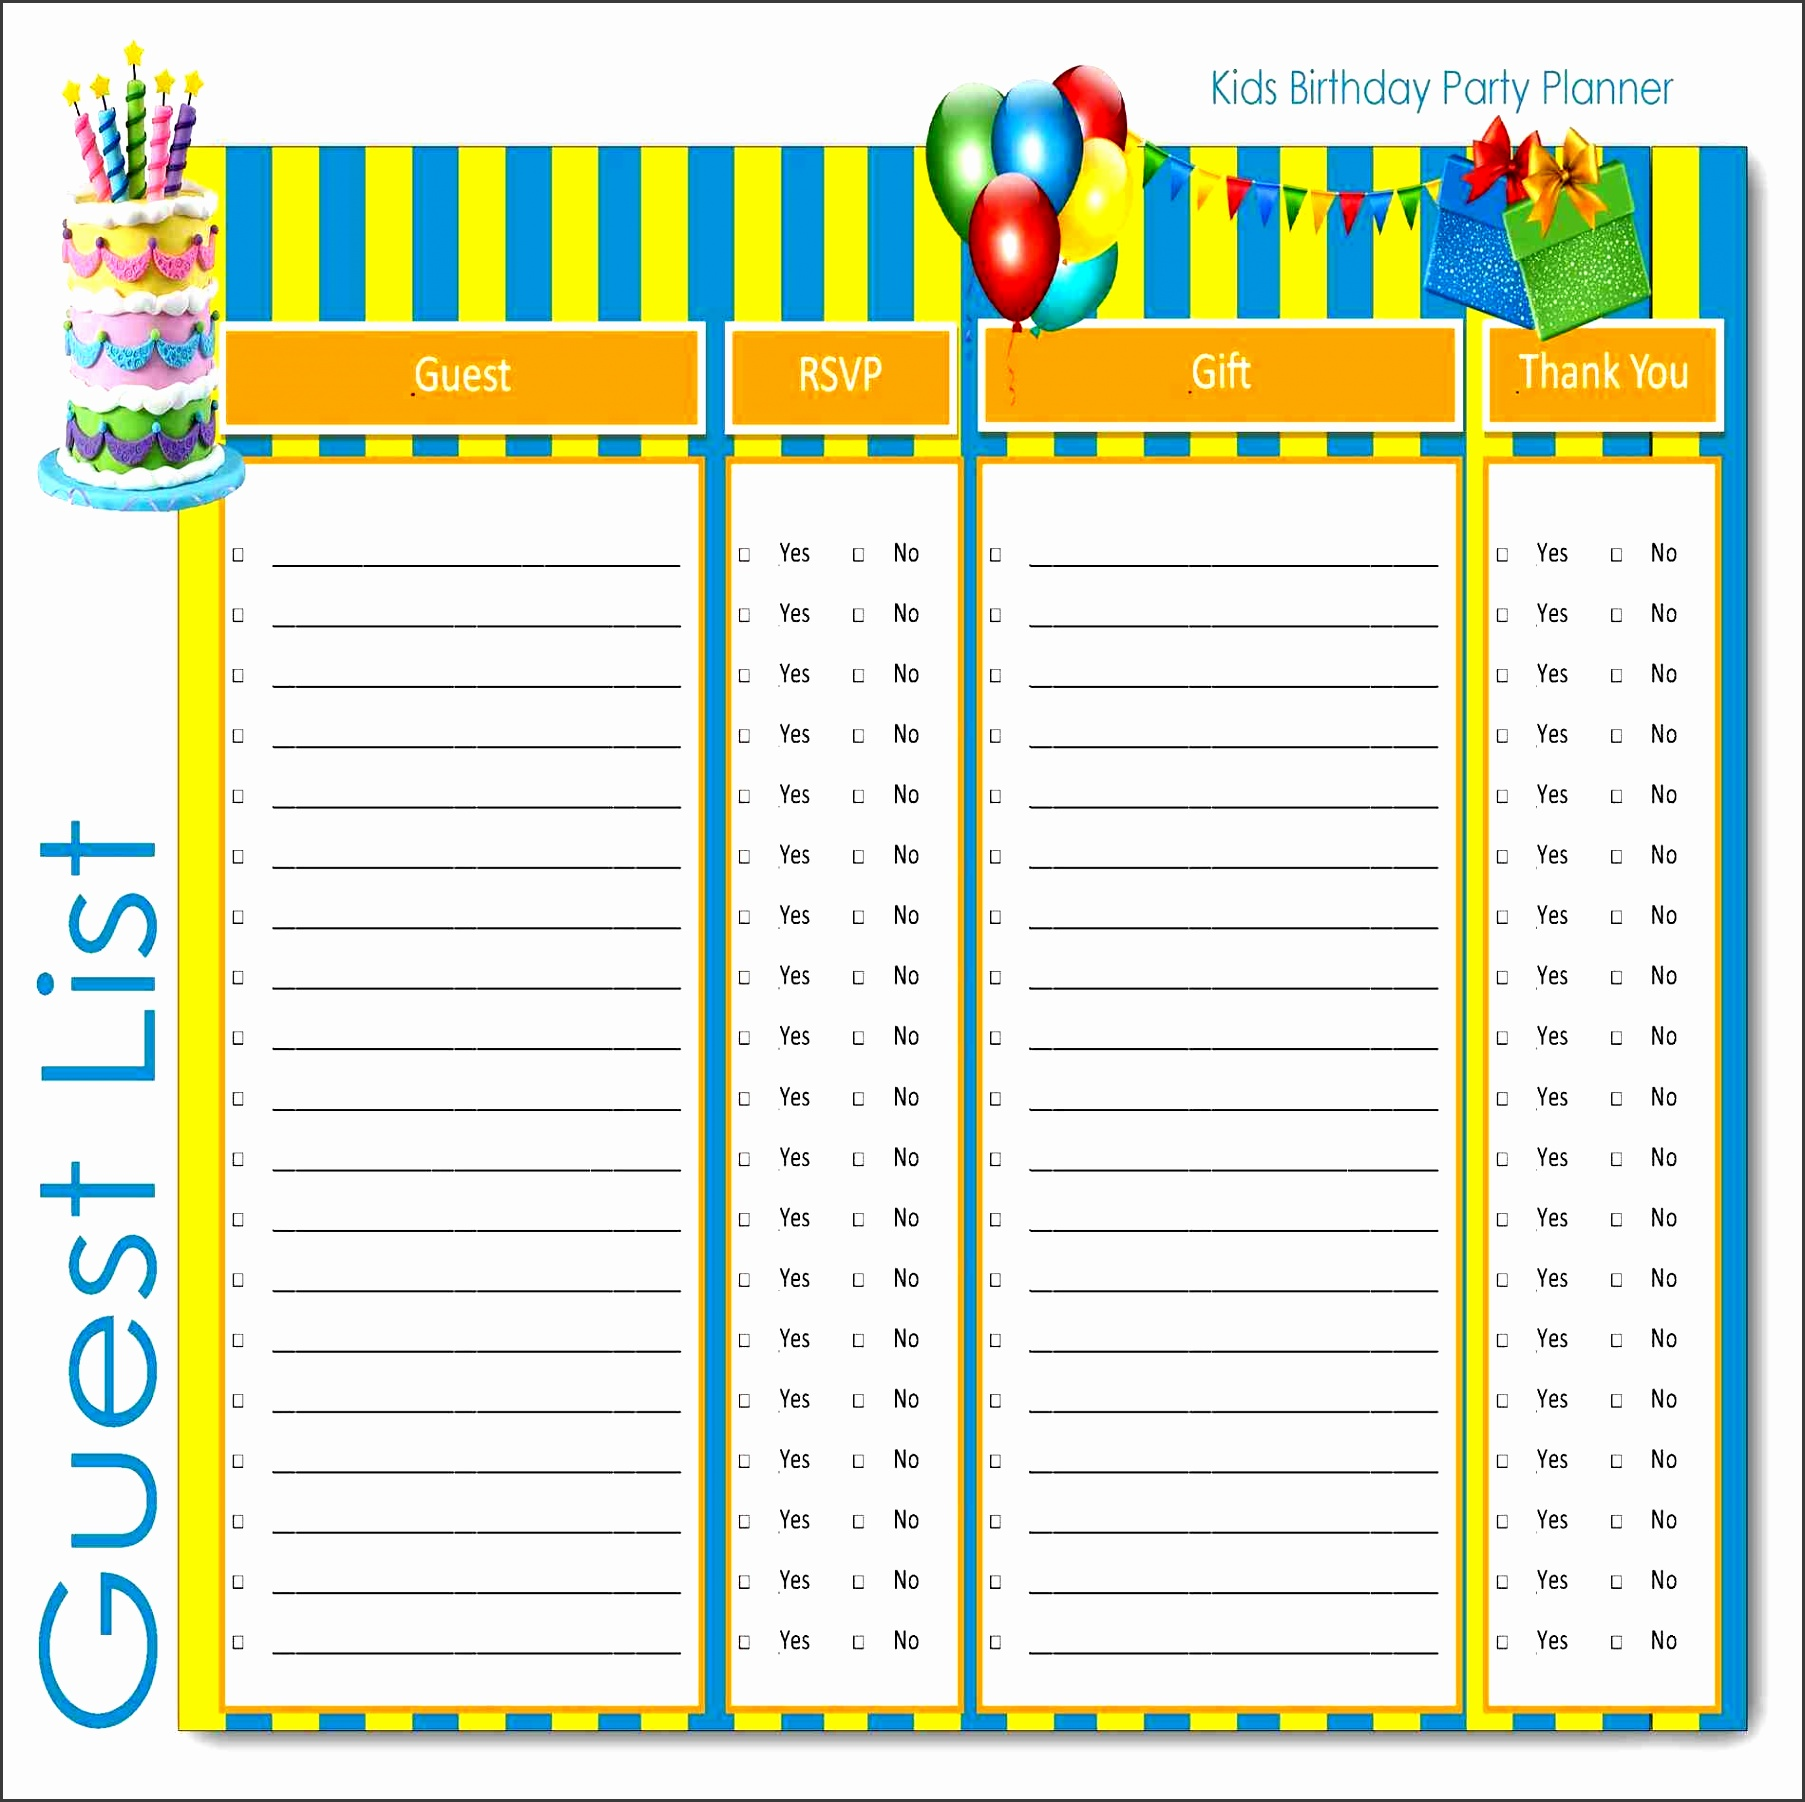 guest party guest list template list template job resumes word wedding party tracker example by keara